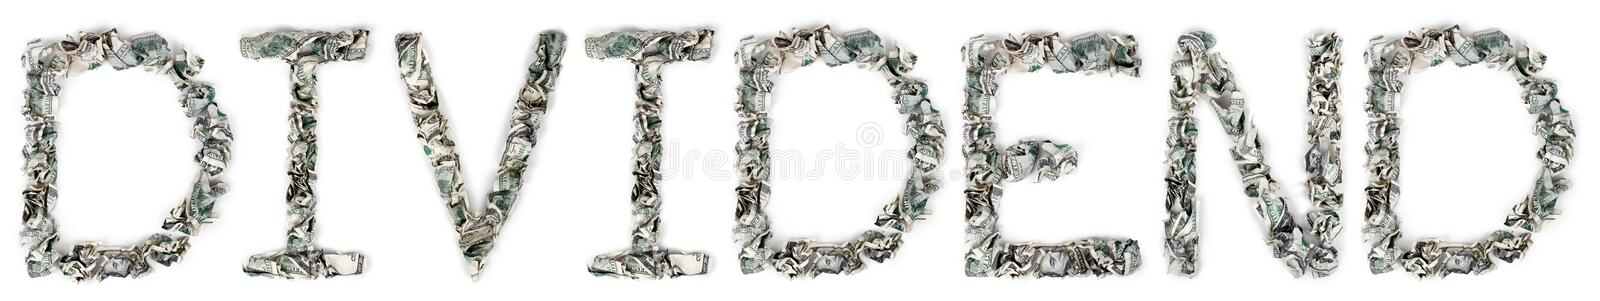 Dividend - Crimped 100$ Bills. The word 'dividend', made out of crimped 100$ bills. Isolated on white background royalty free stock photo